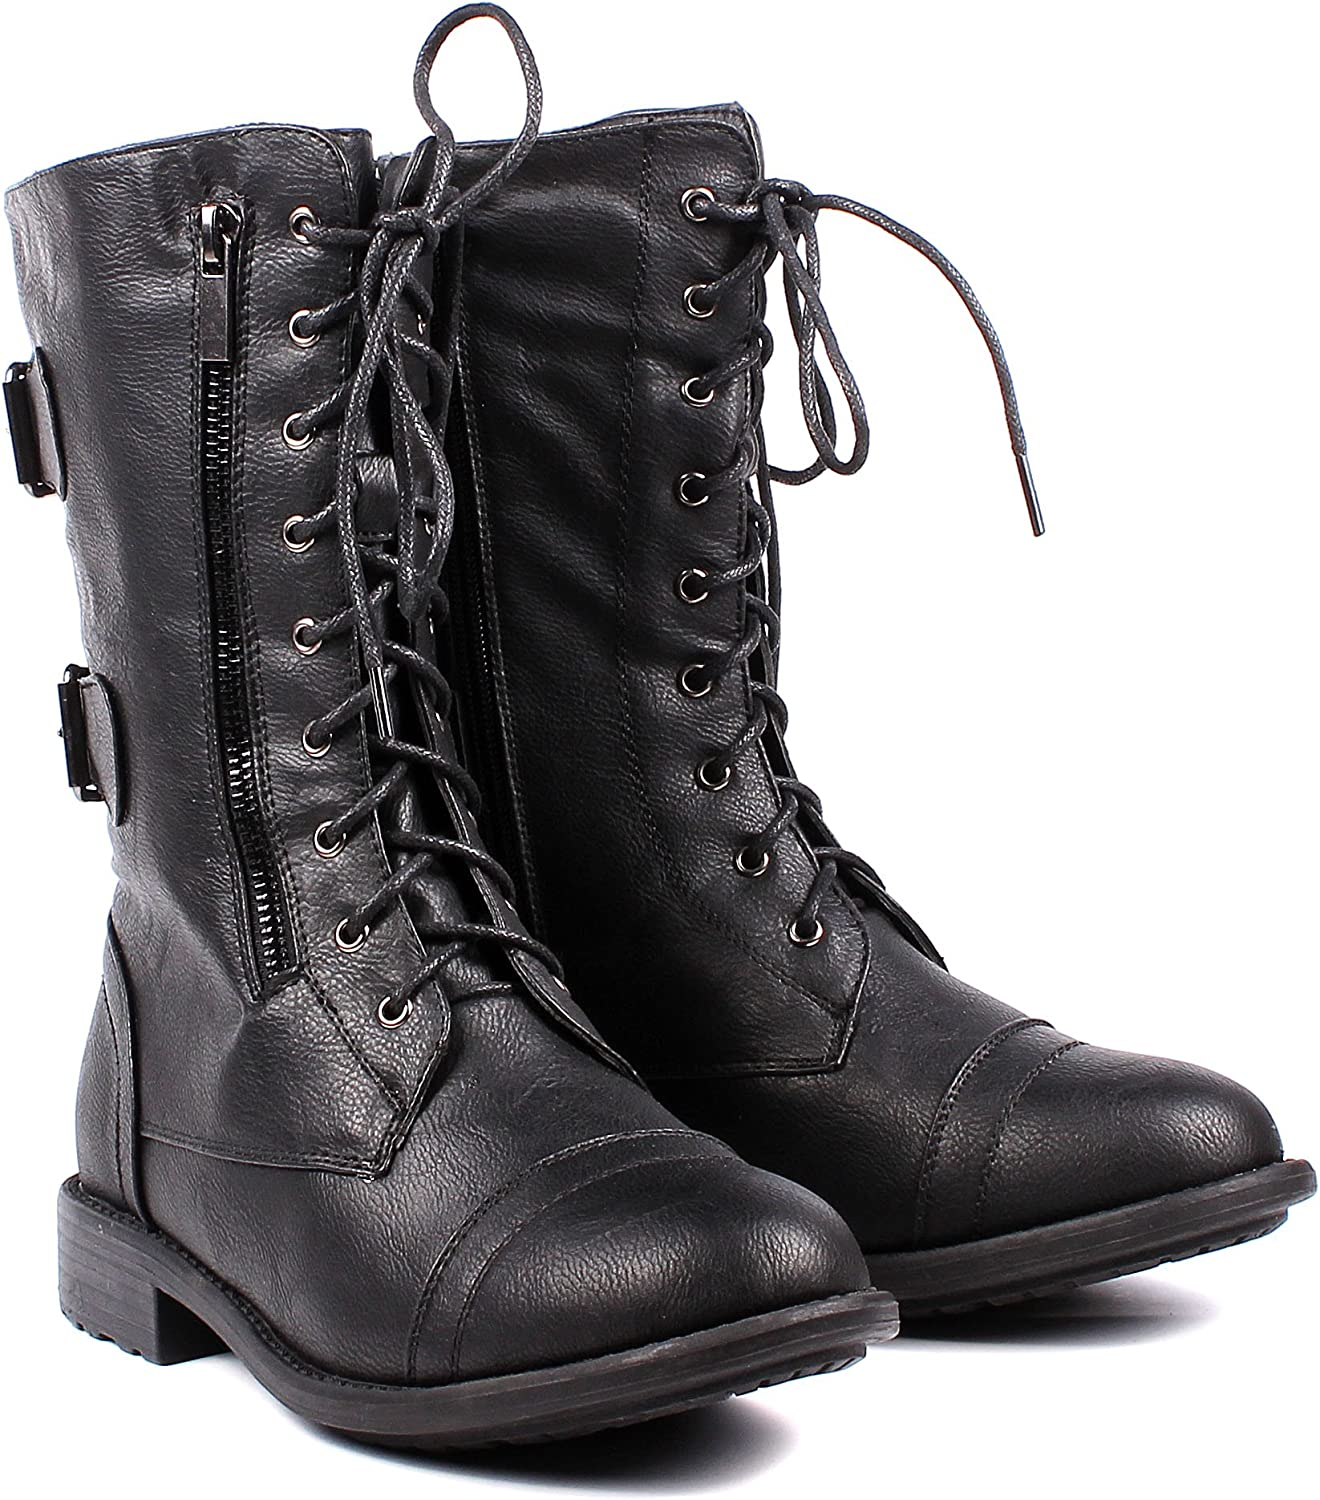 Fashion Buckle Lace up Womens Combat Military Boots Zip Faux Leather Womens Mid-Calf Boots Winter Shoes